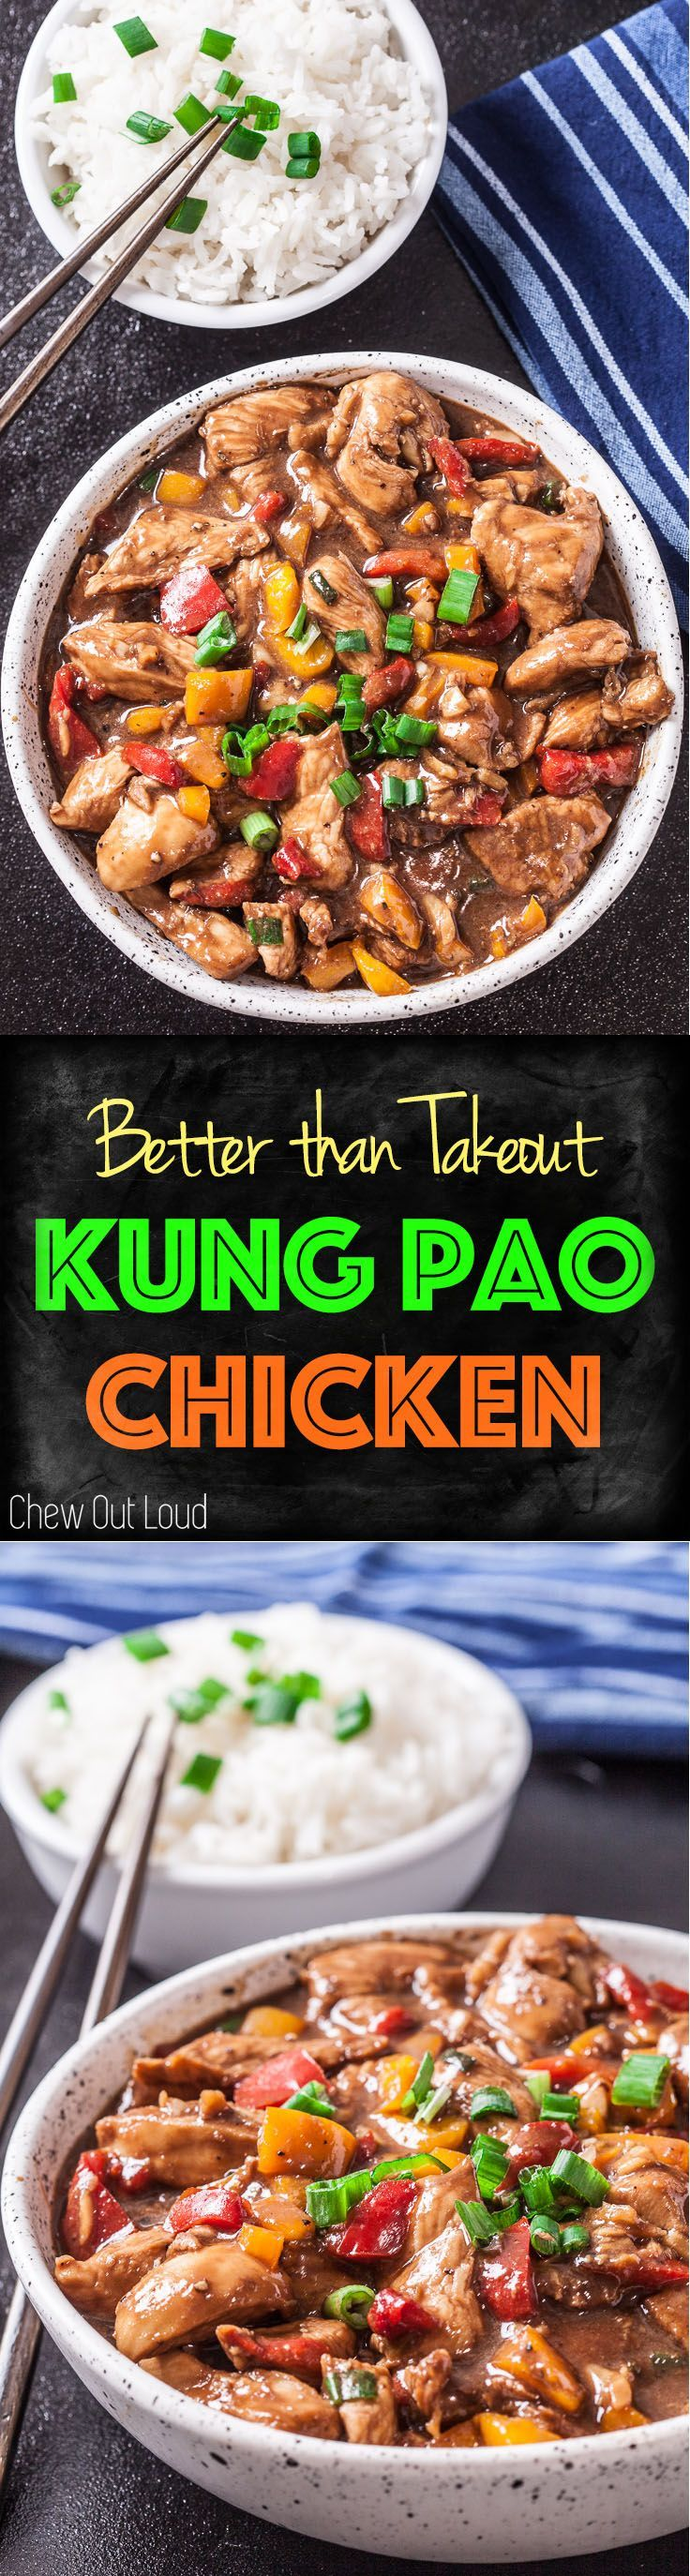 Healthy, Way Better than Takeout, Kung Pao Chicken!! So so flavorful. #kungpao #chicken #chinesefood...